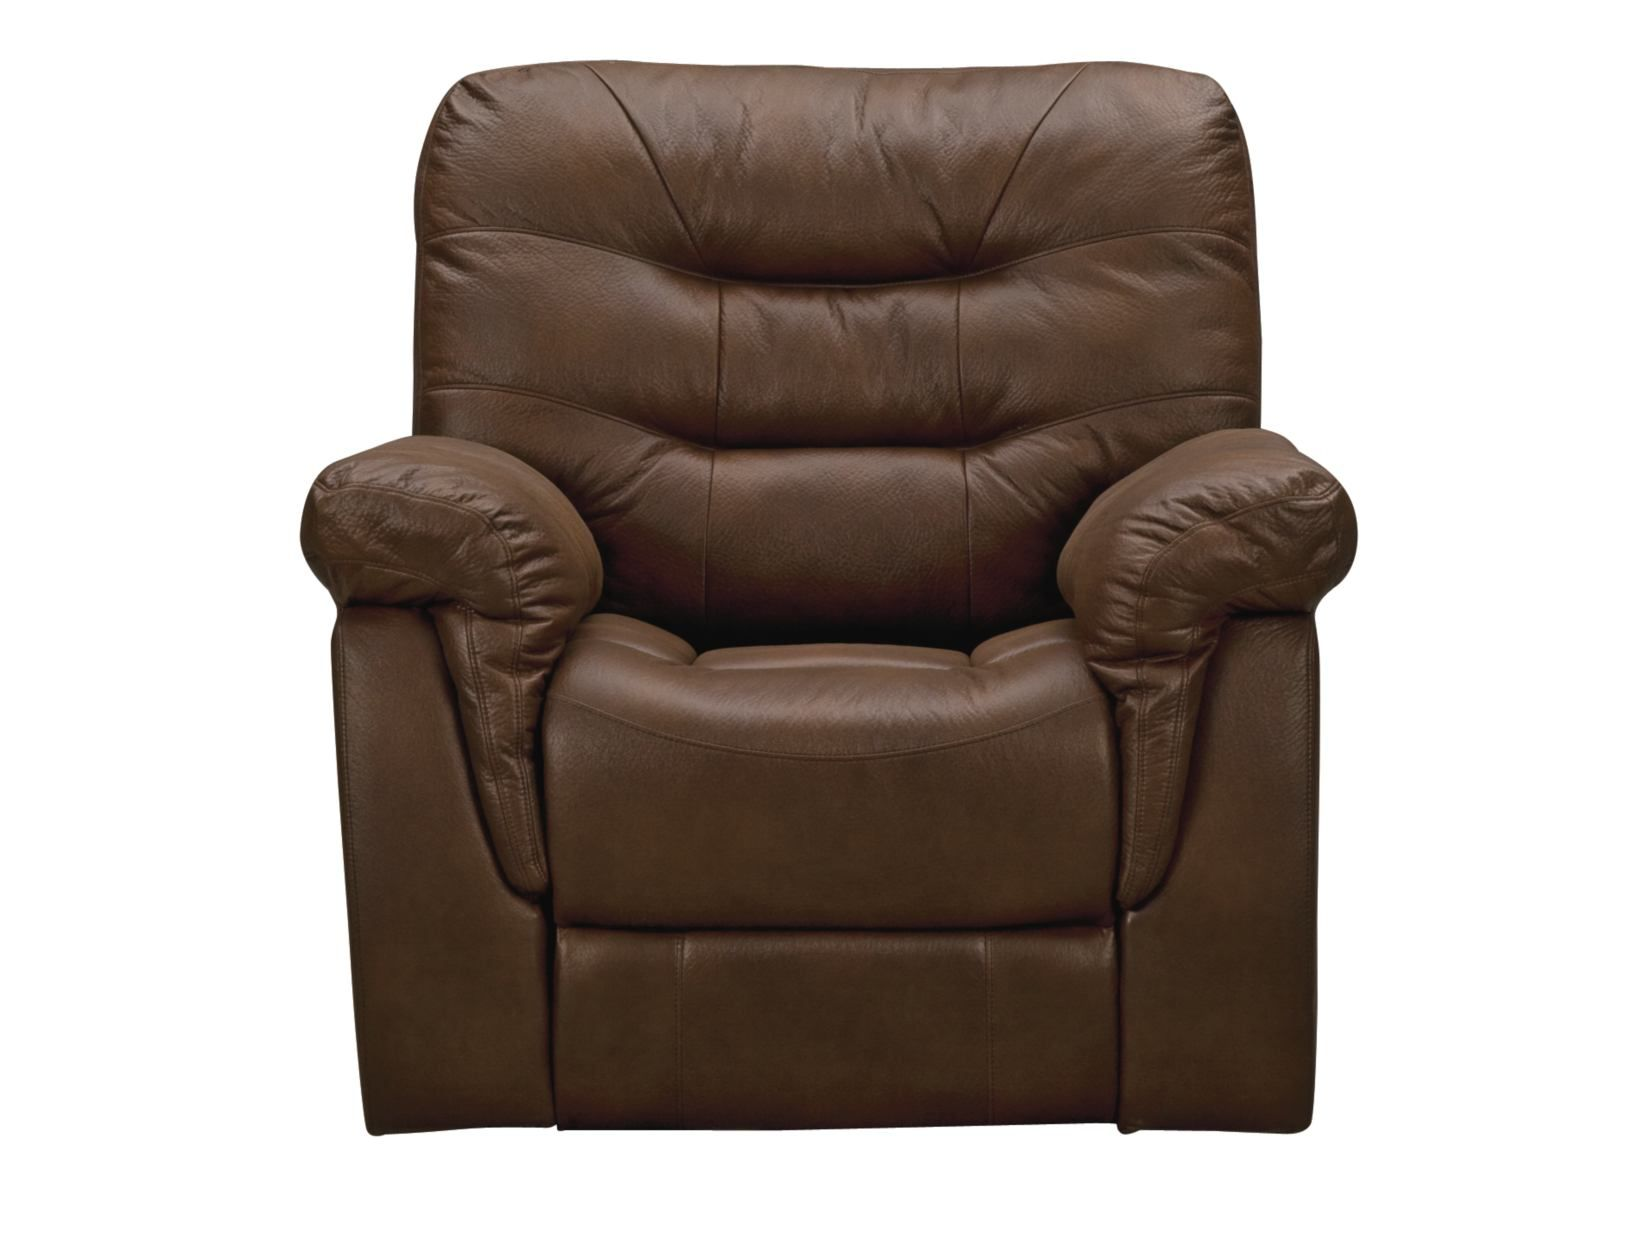 #ValueCityPinToWin Holton Brown Rocker Recliner - Value City Furniture